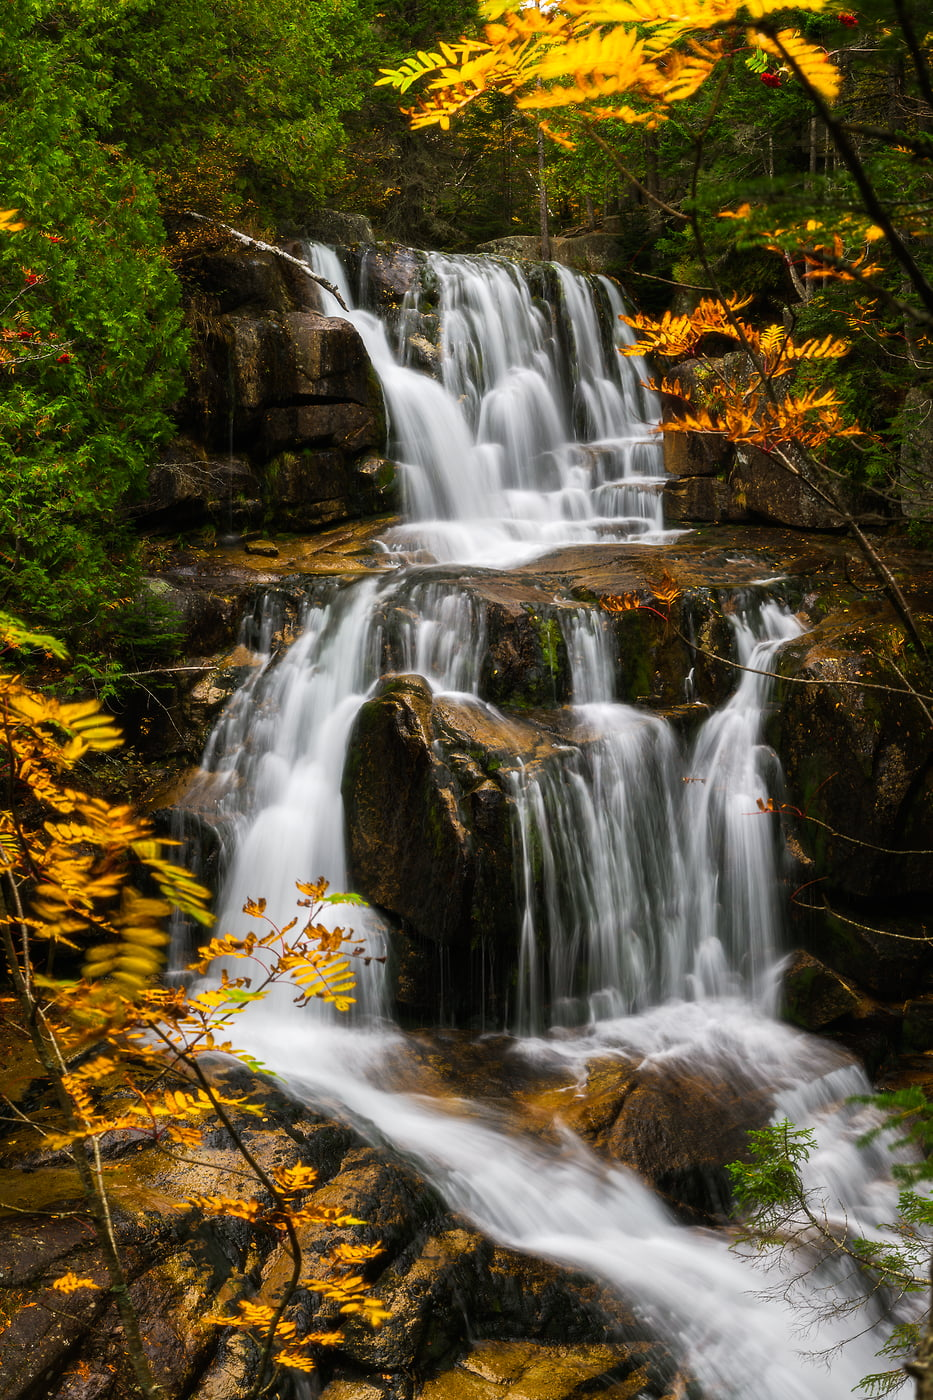 155 megapixels! A very high resolution, large-format photo of a New England waterfall with fall foliage; fine art nature photograph created by Aaron Priest at Katahdin Stream Falls on the Hunt Trail in Baxter State Park, Maine